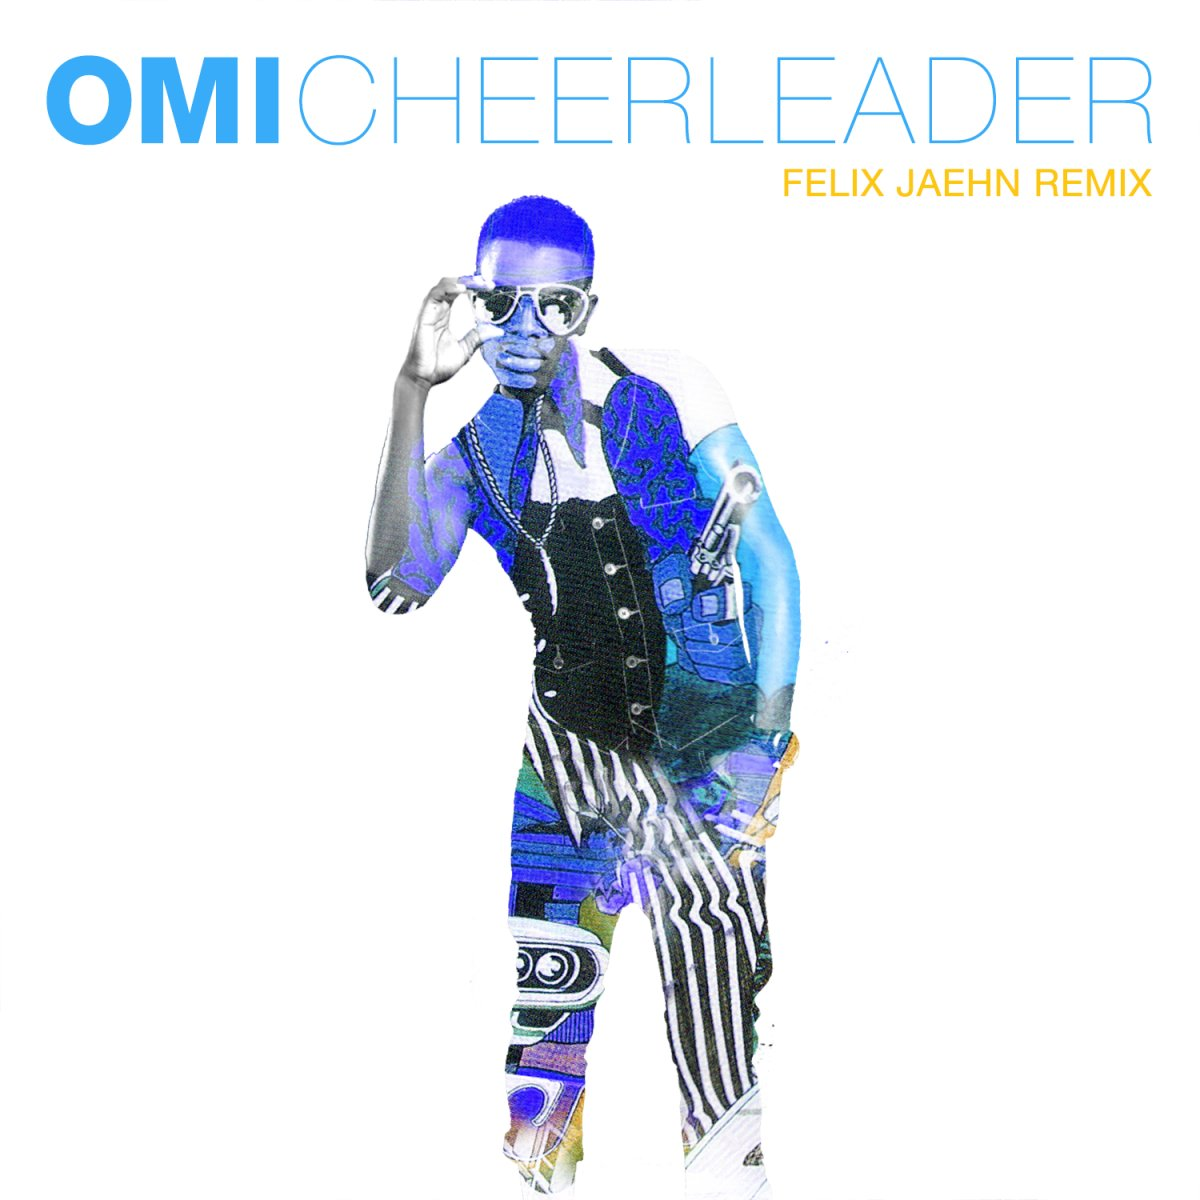 Cover: Cheerleader, Omi